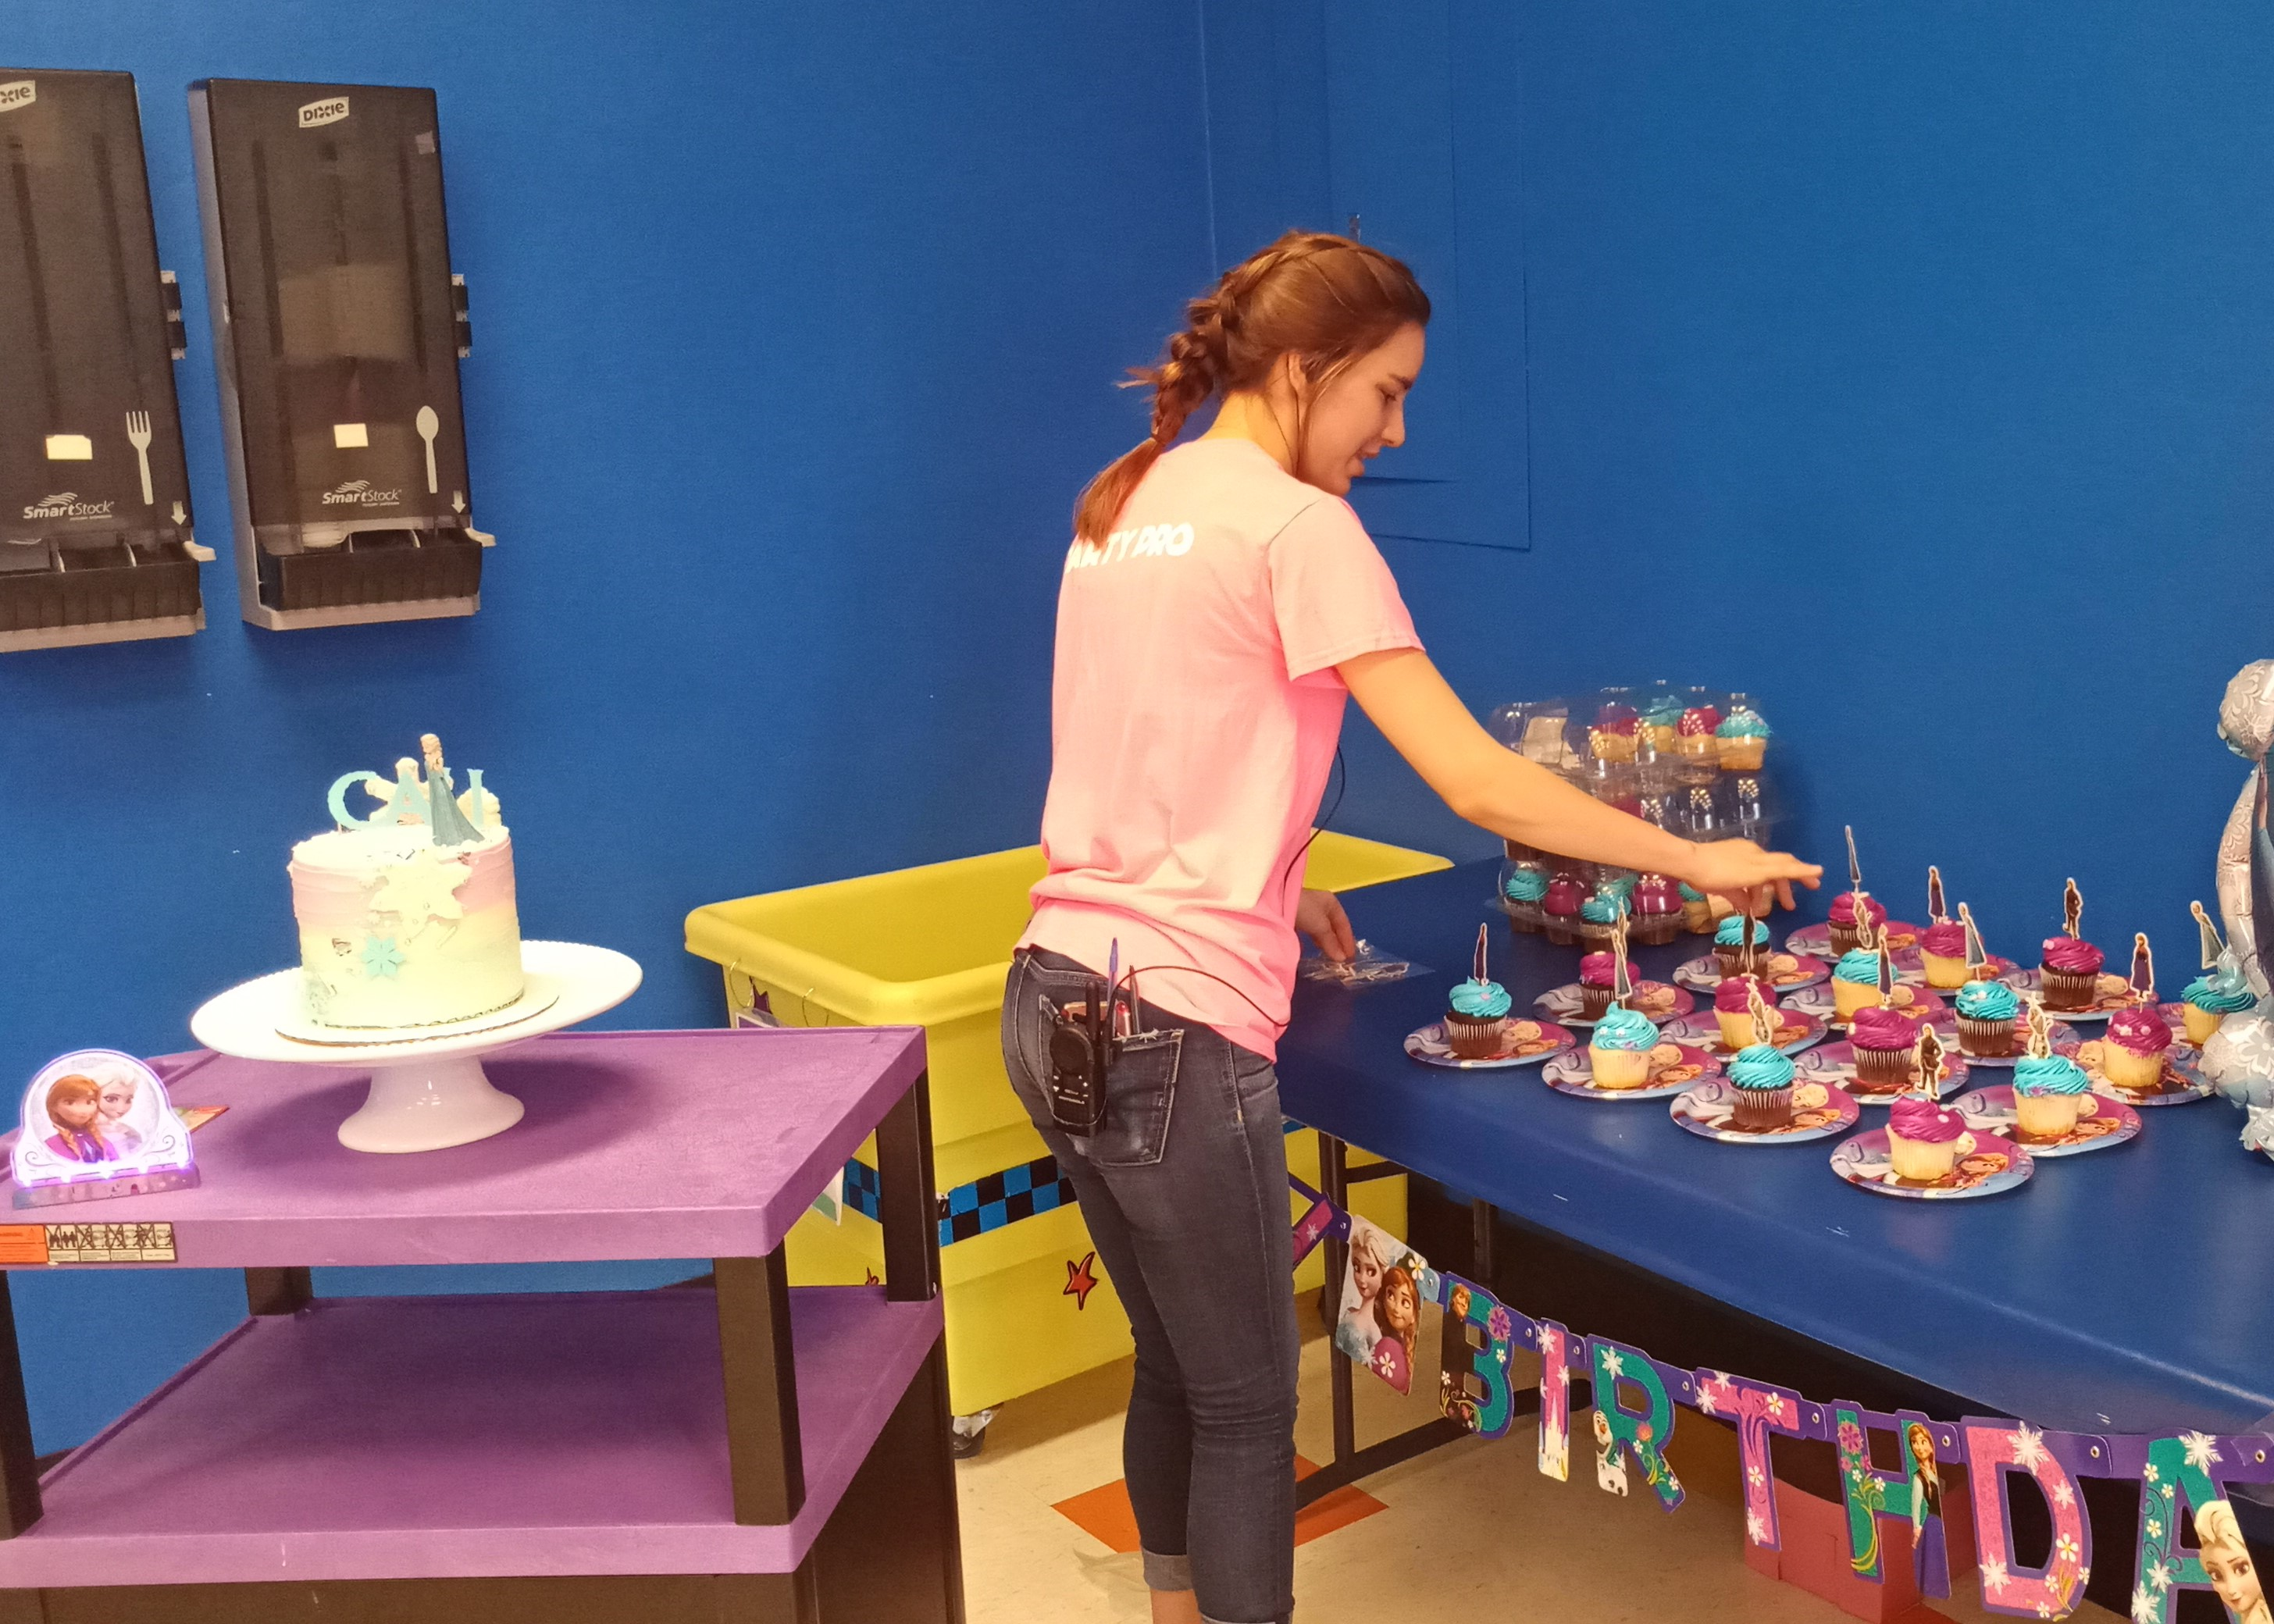 Pump It Up staff setting up cupcakes in the private birthday party room.